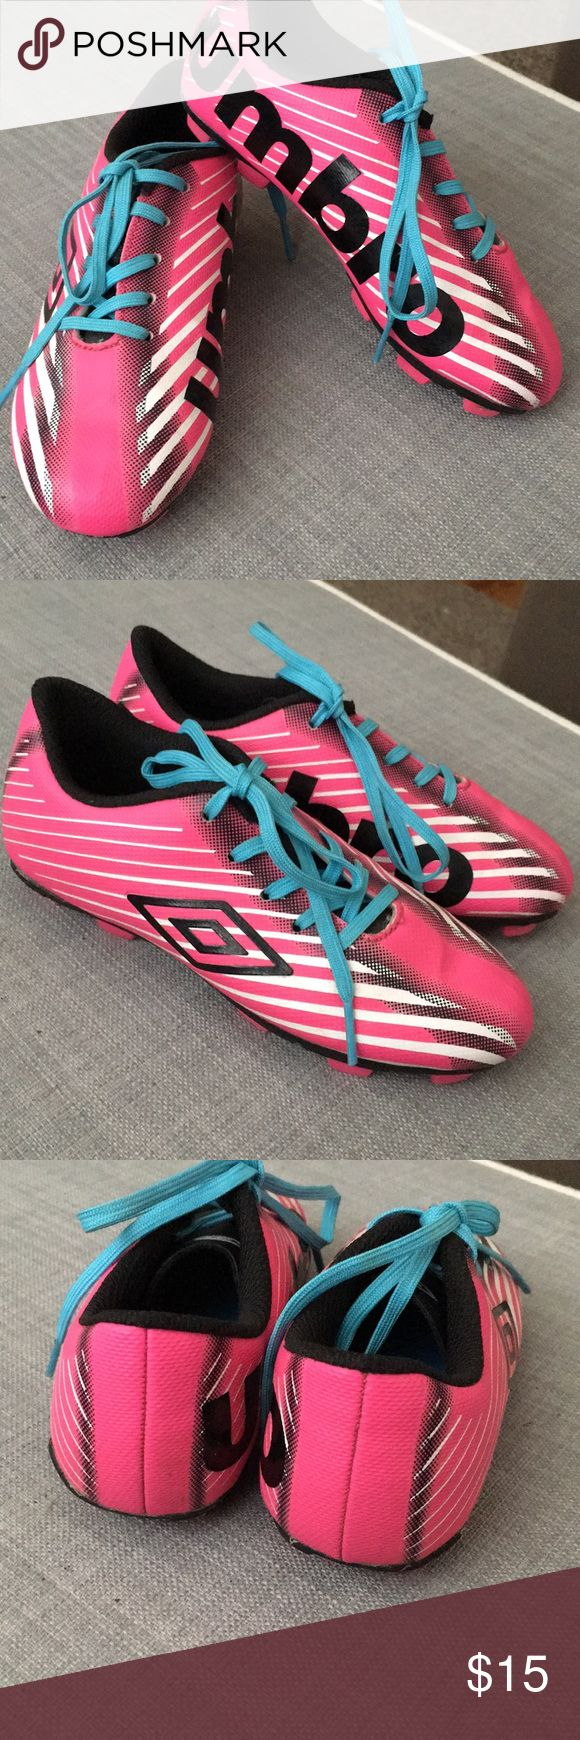 Umbro cleats 12 Toddler Excellent condition. Umbro cleats. Size 12 Toddler Umbro Shoes